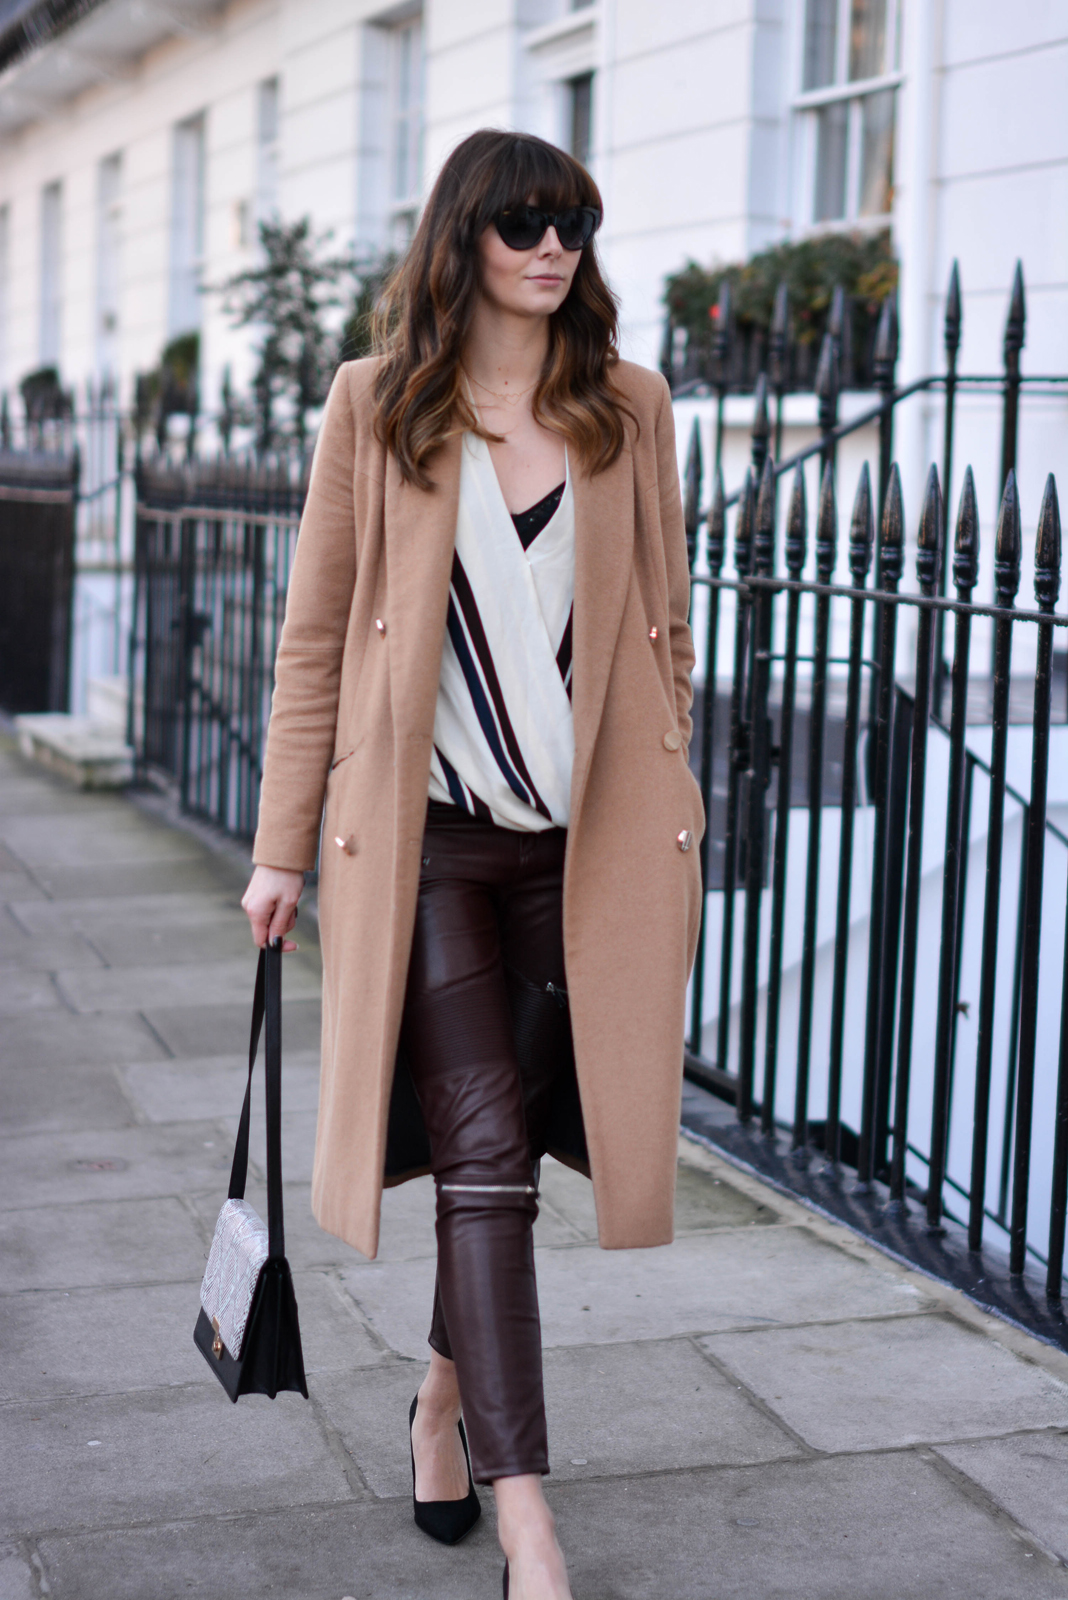 EJSTYLE - Topshop stripe drapped shirt top, River Island camel coat, Zara burgundy biker trousers faux leather, Snakeskin shoulder bag, OOTD, fashion blogger, Daily outfit